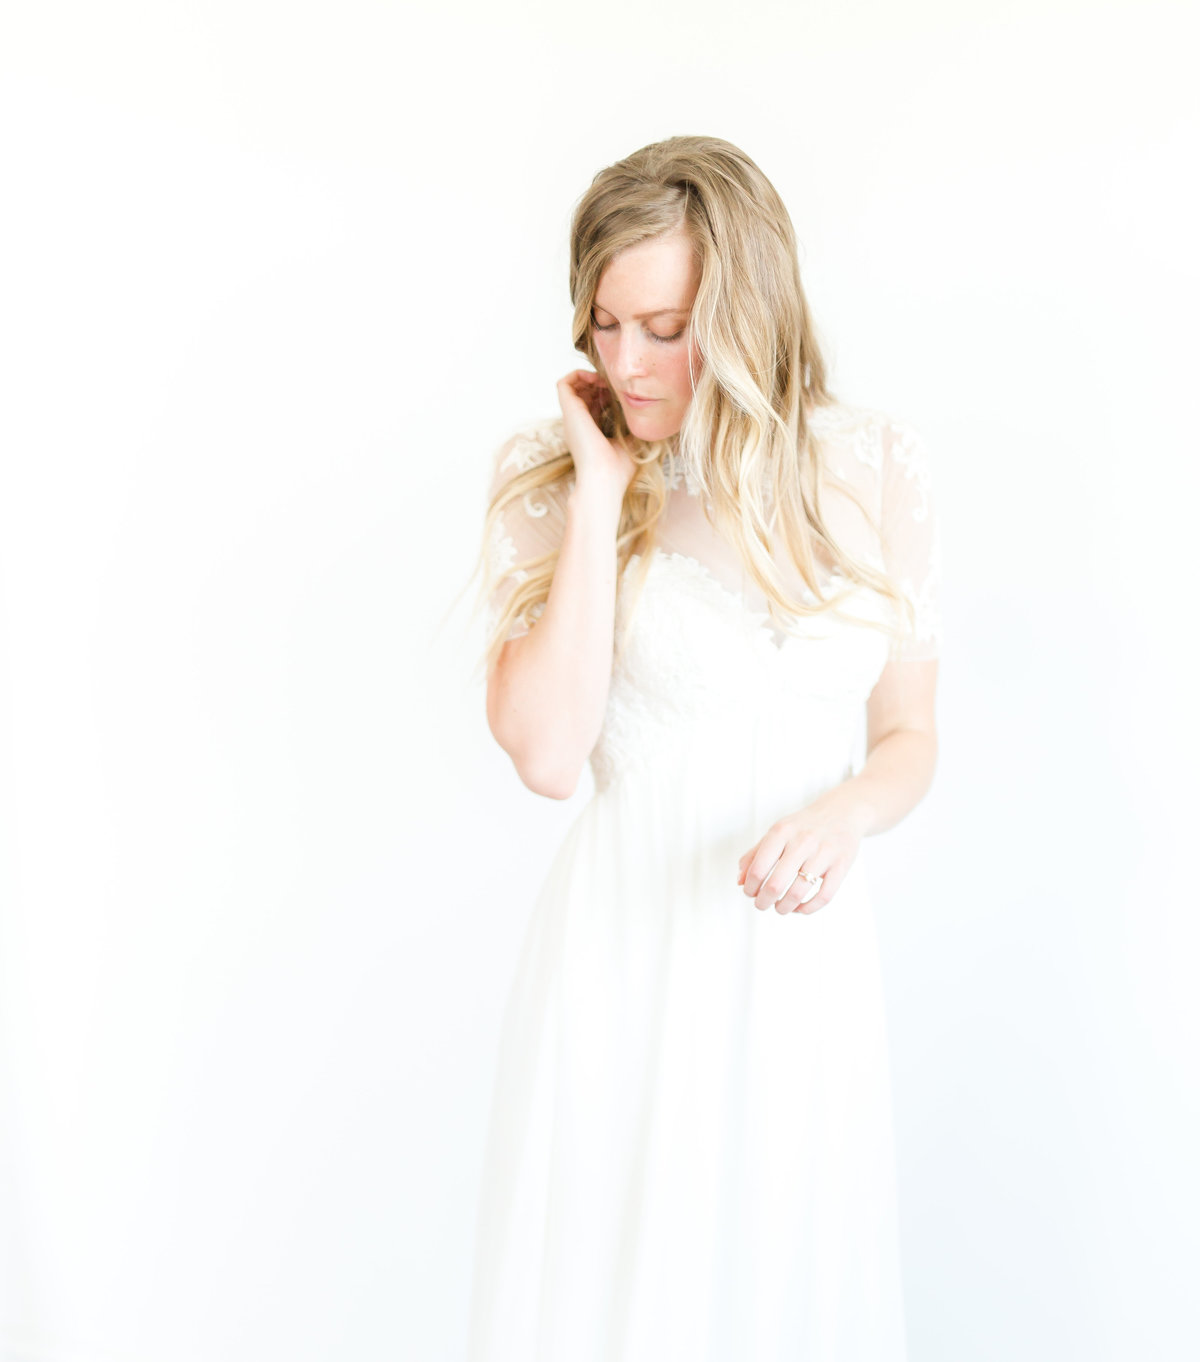 Kailey - Styled Shoot - New Edits-134